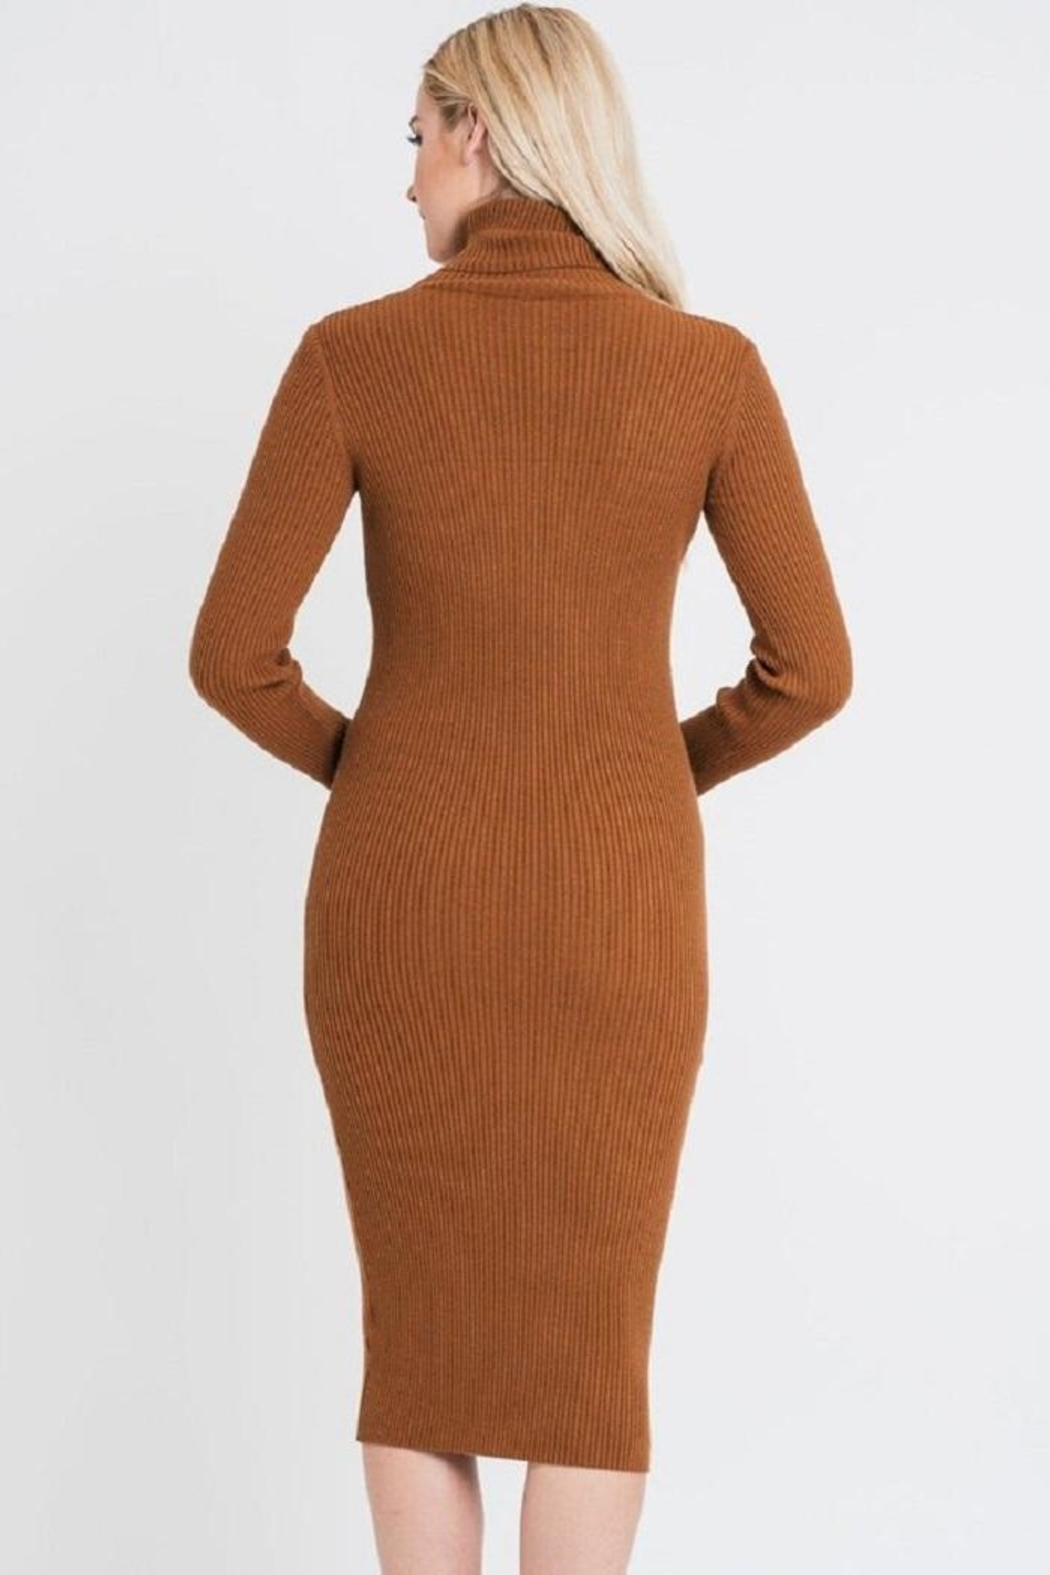 Renee C Turtleneck Sweater Dress - Side Cropped Image